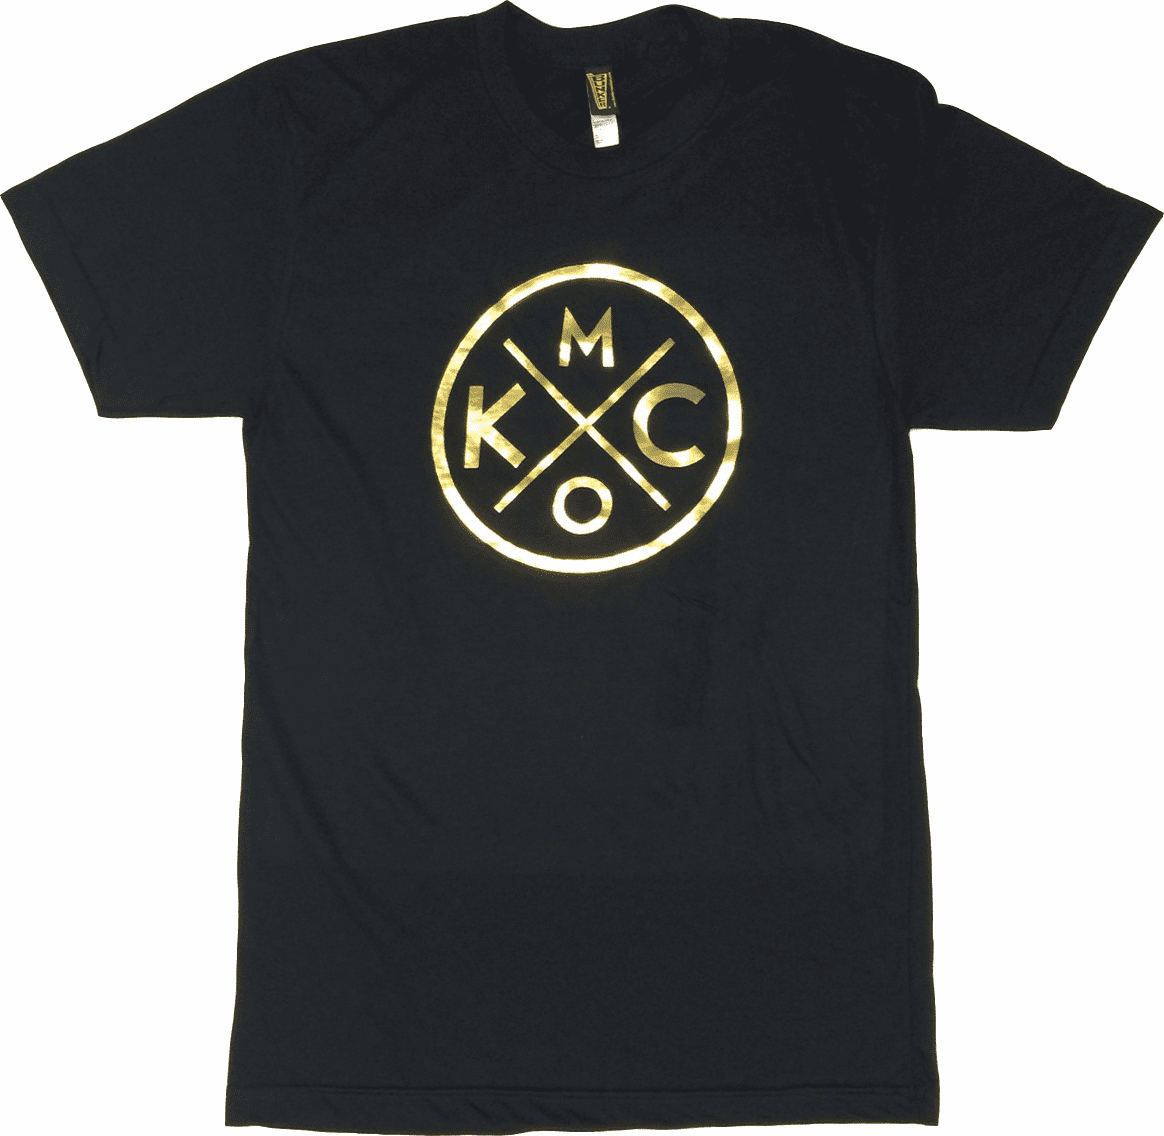 Unisex KCMO Gold Foil Tee